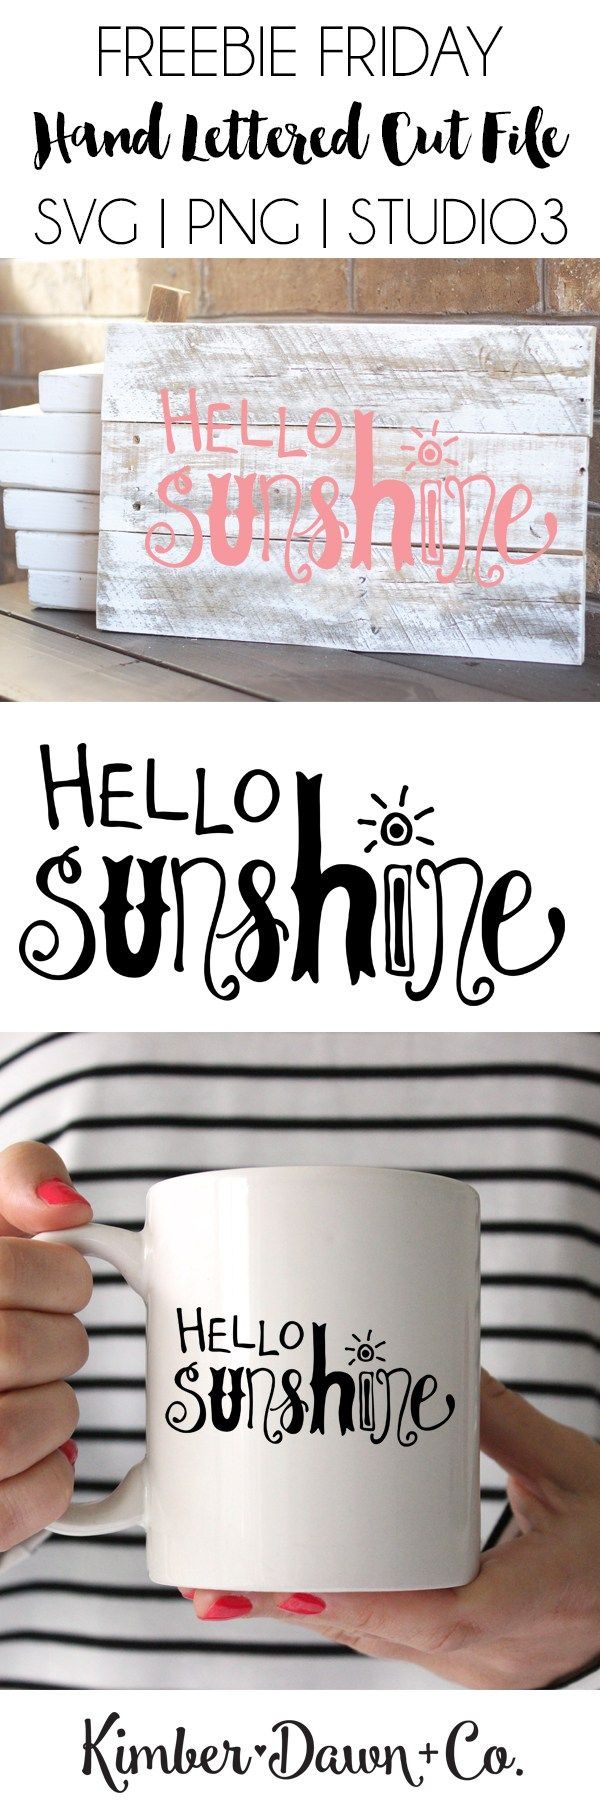 Freebie Friday! Hand Lettered Hello Sunshine Free SVG Cut File (+SVG and PNG versions)! | KimberDawnCo.com